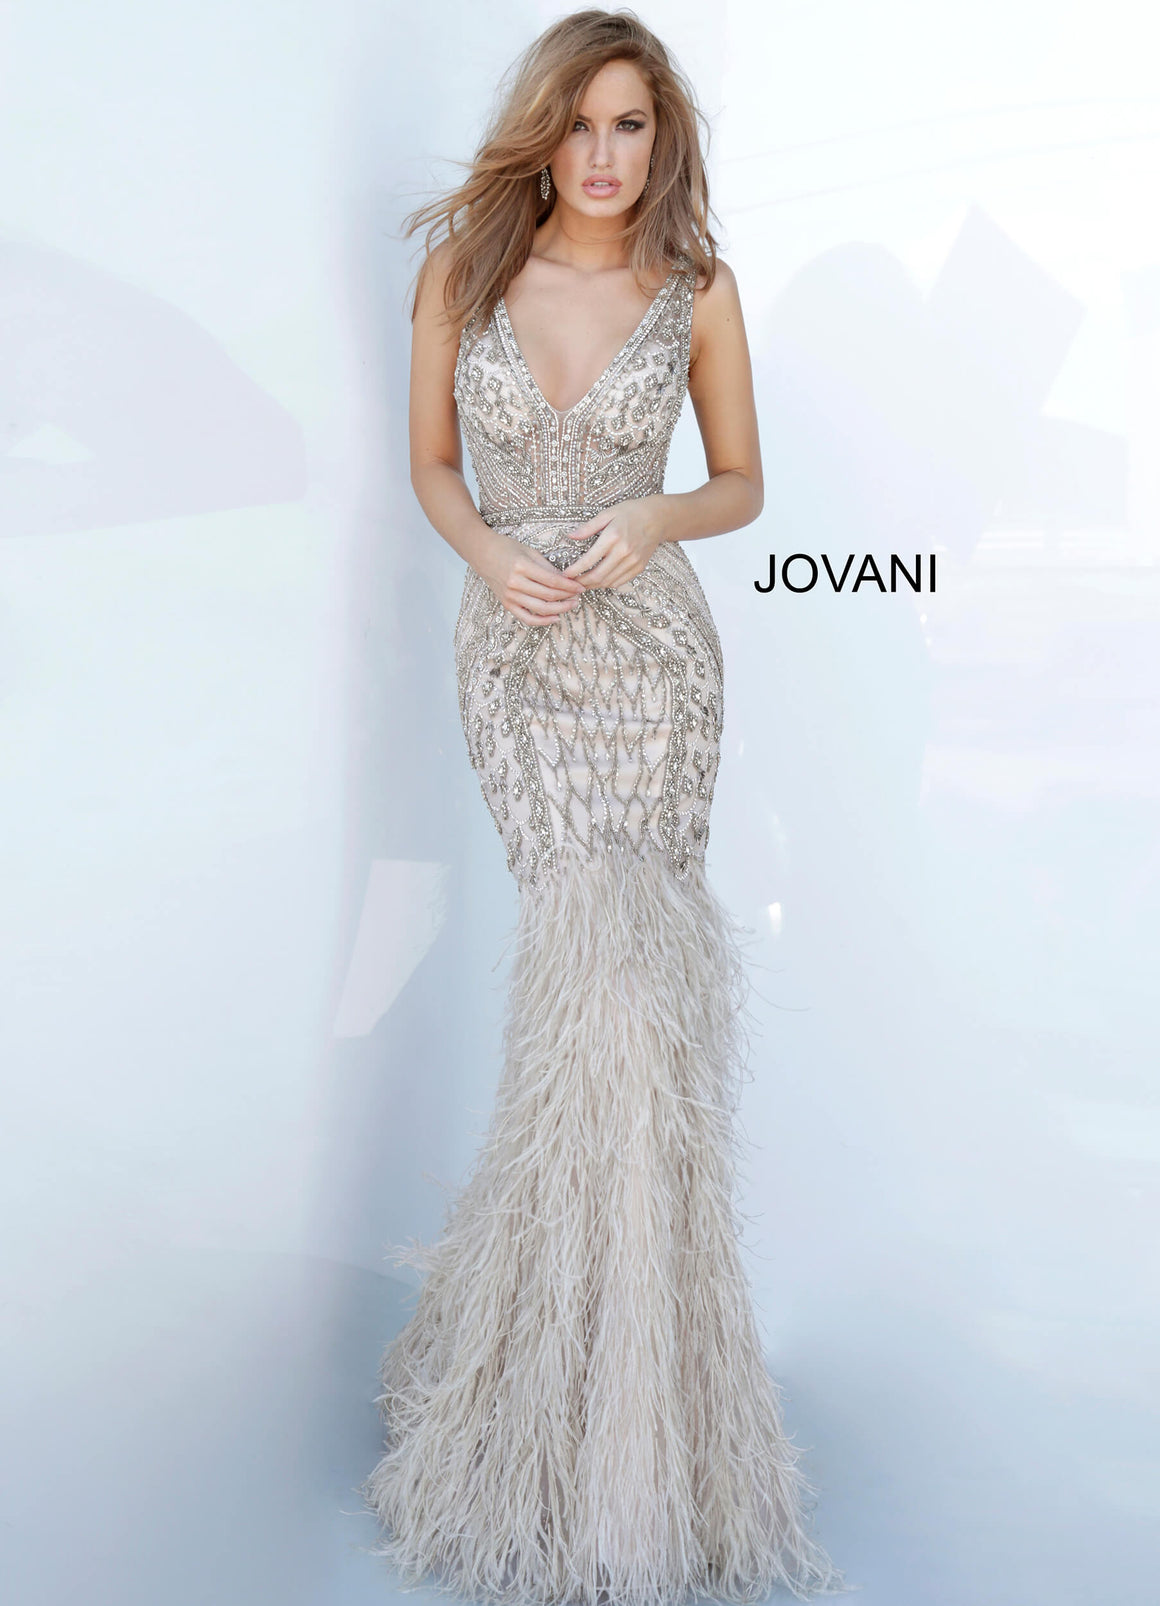 Jovani 02798 Feather Bottom Embellished Evening Dress